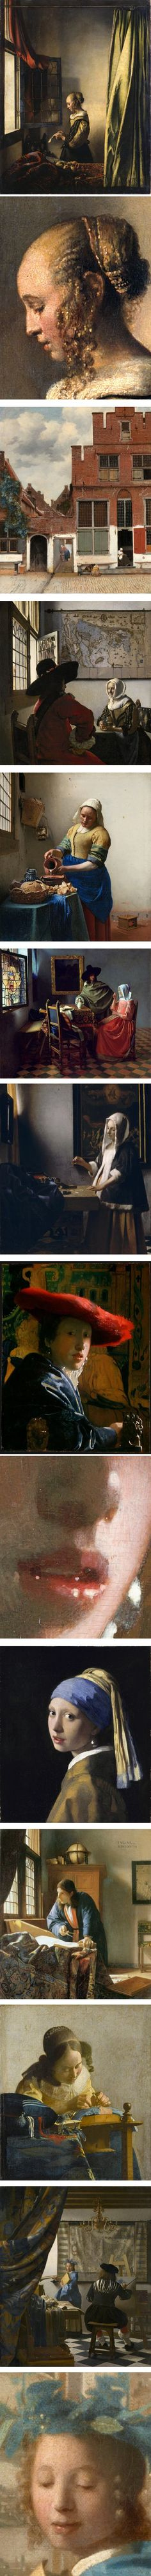 High resolution images of Vermeer's paintings